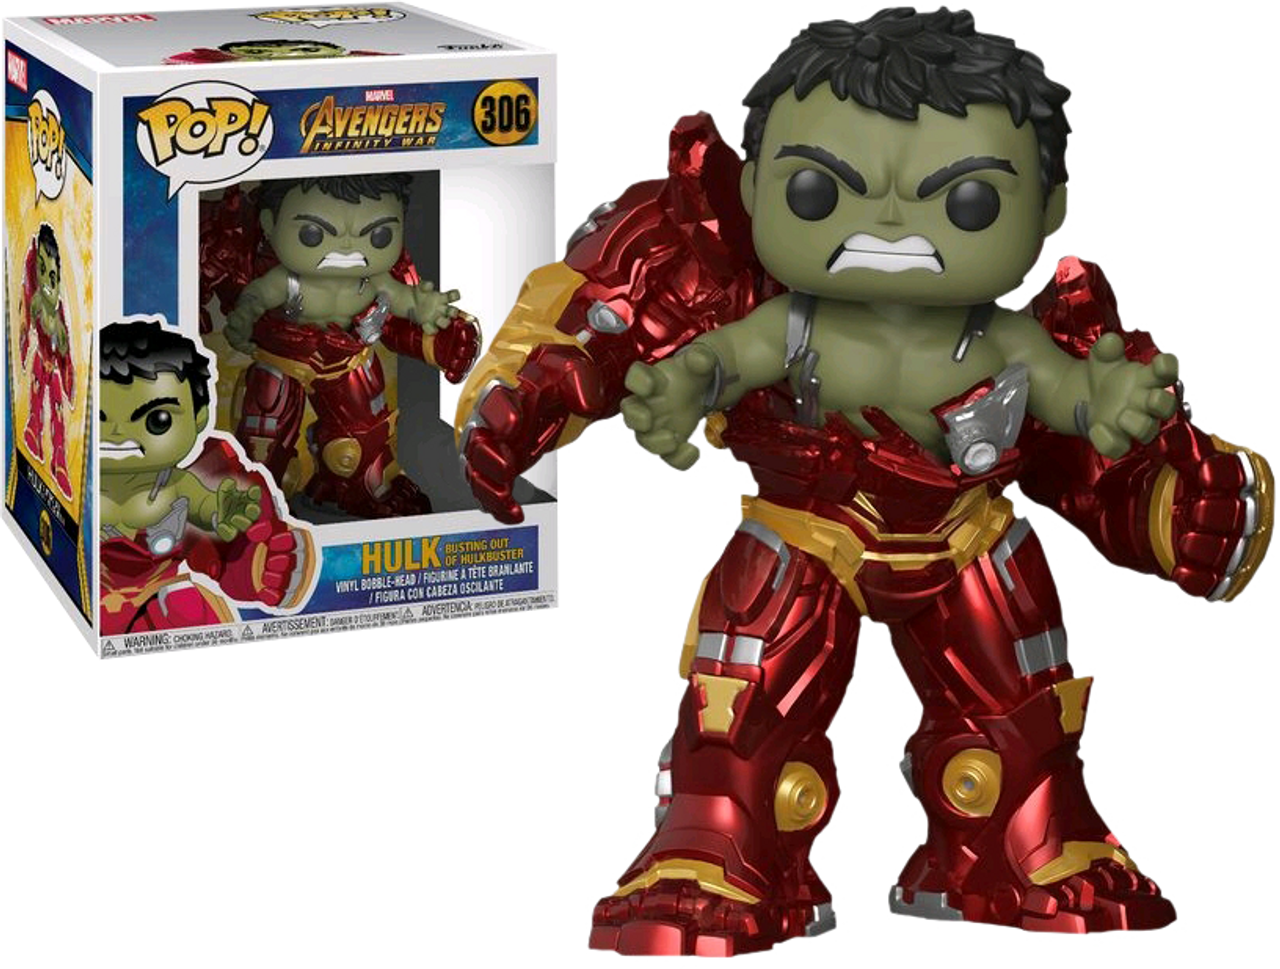 Avengers 3 Infinity War Hulk Busting Out Of Hulkbuster